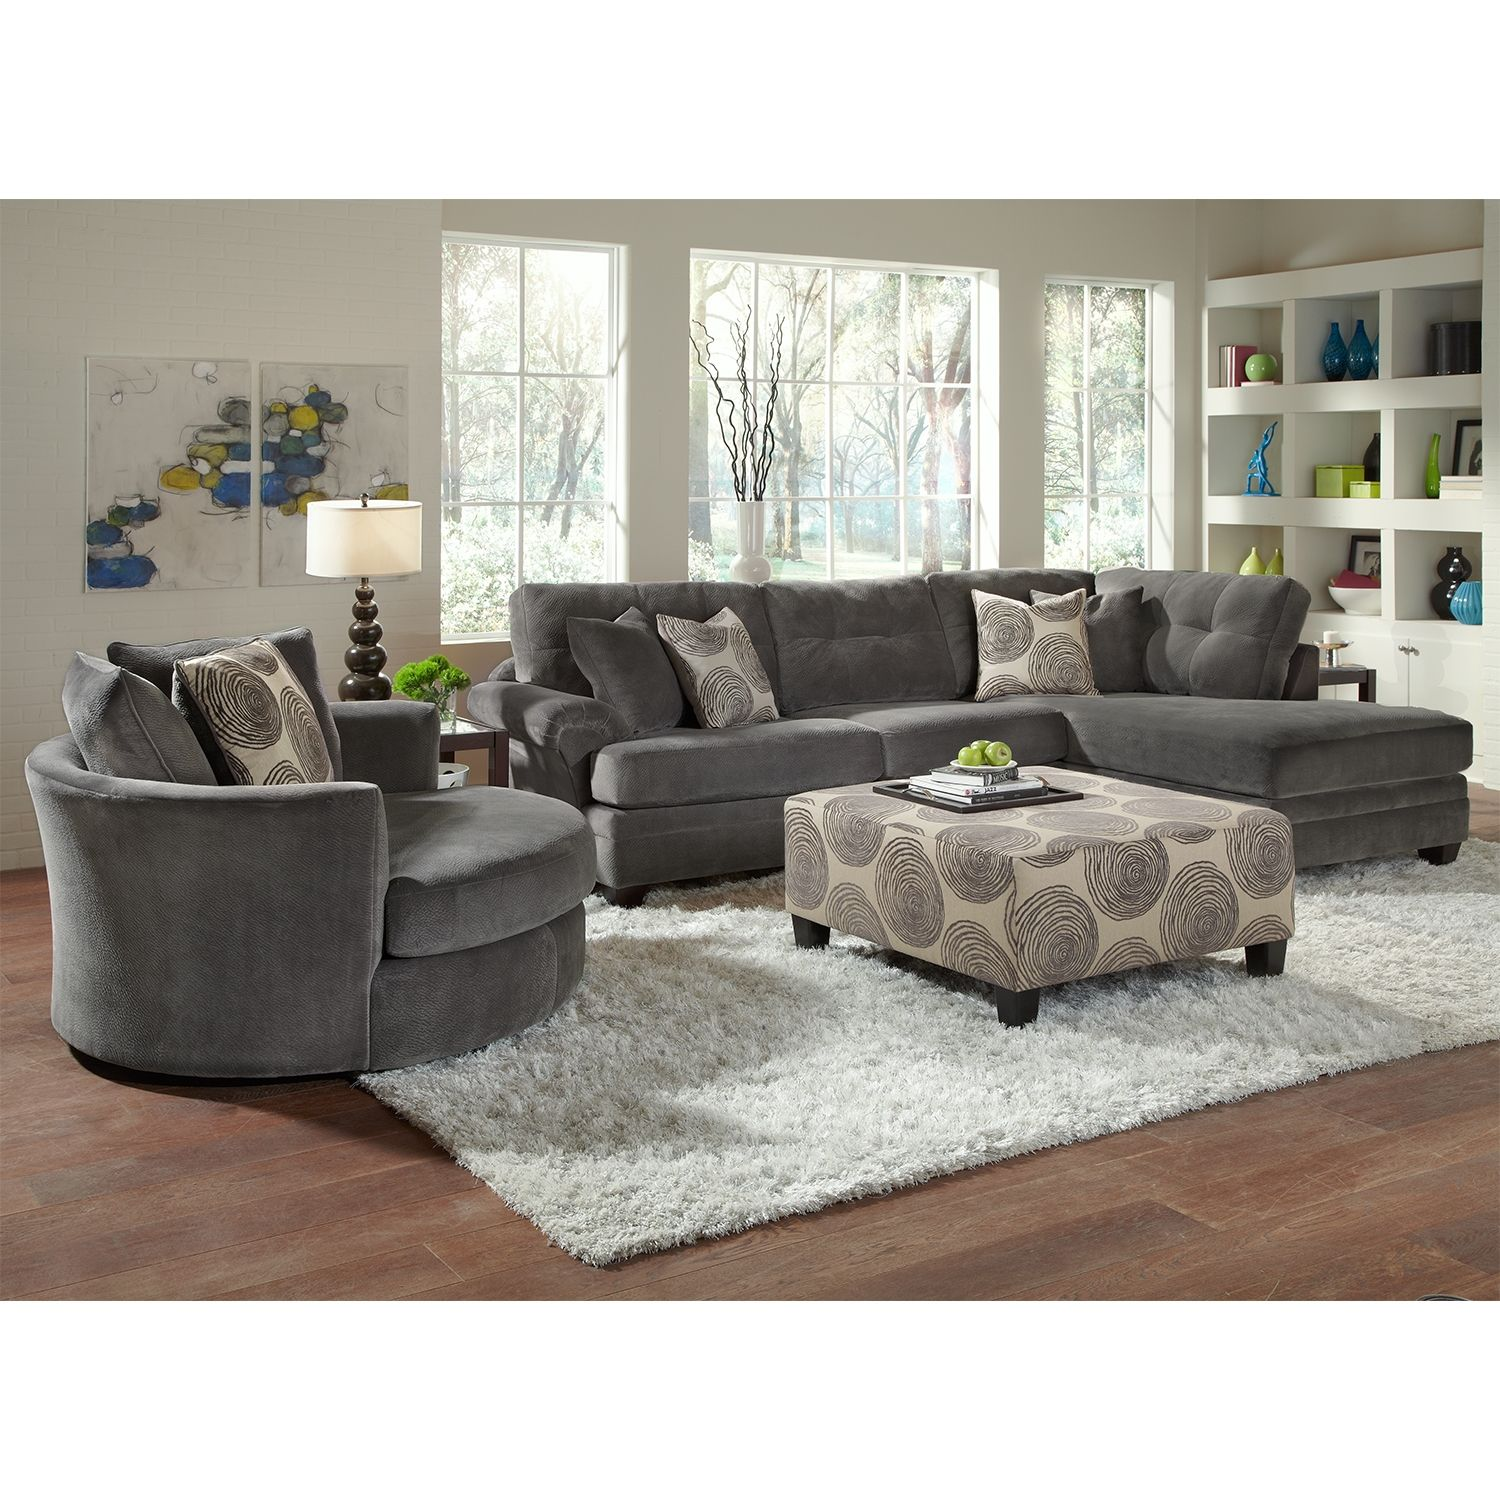 Living room ideas catalina gray upholstery 2 pc sectional furniture com